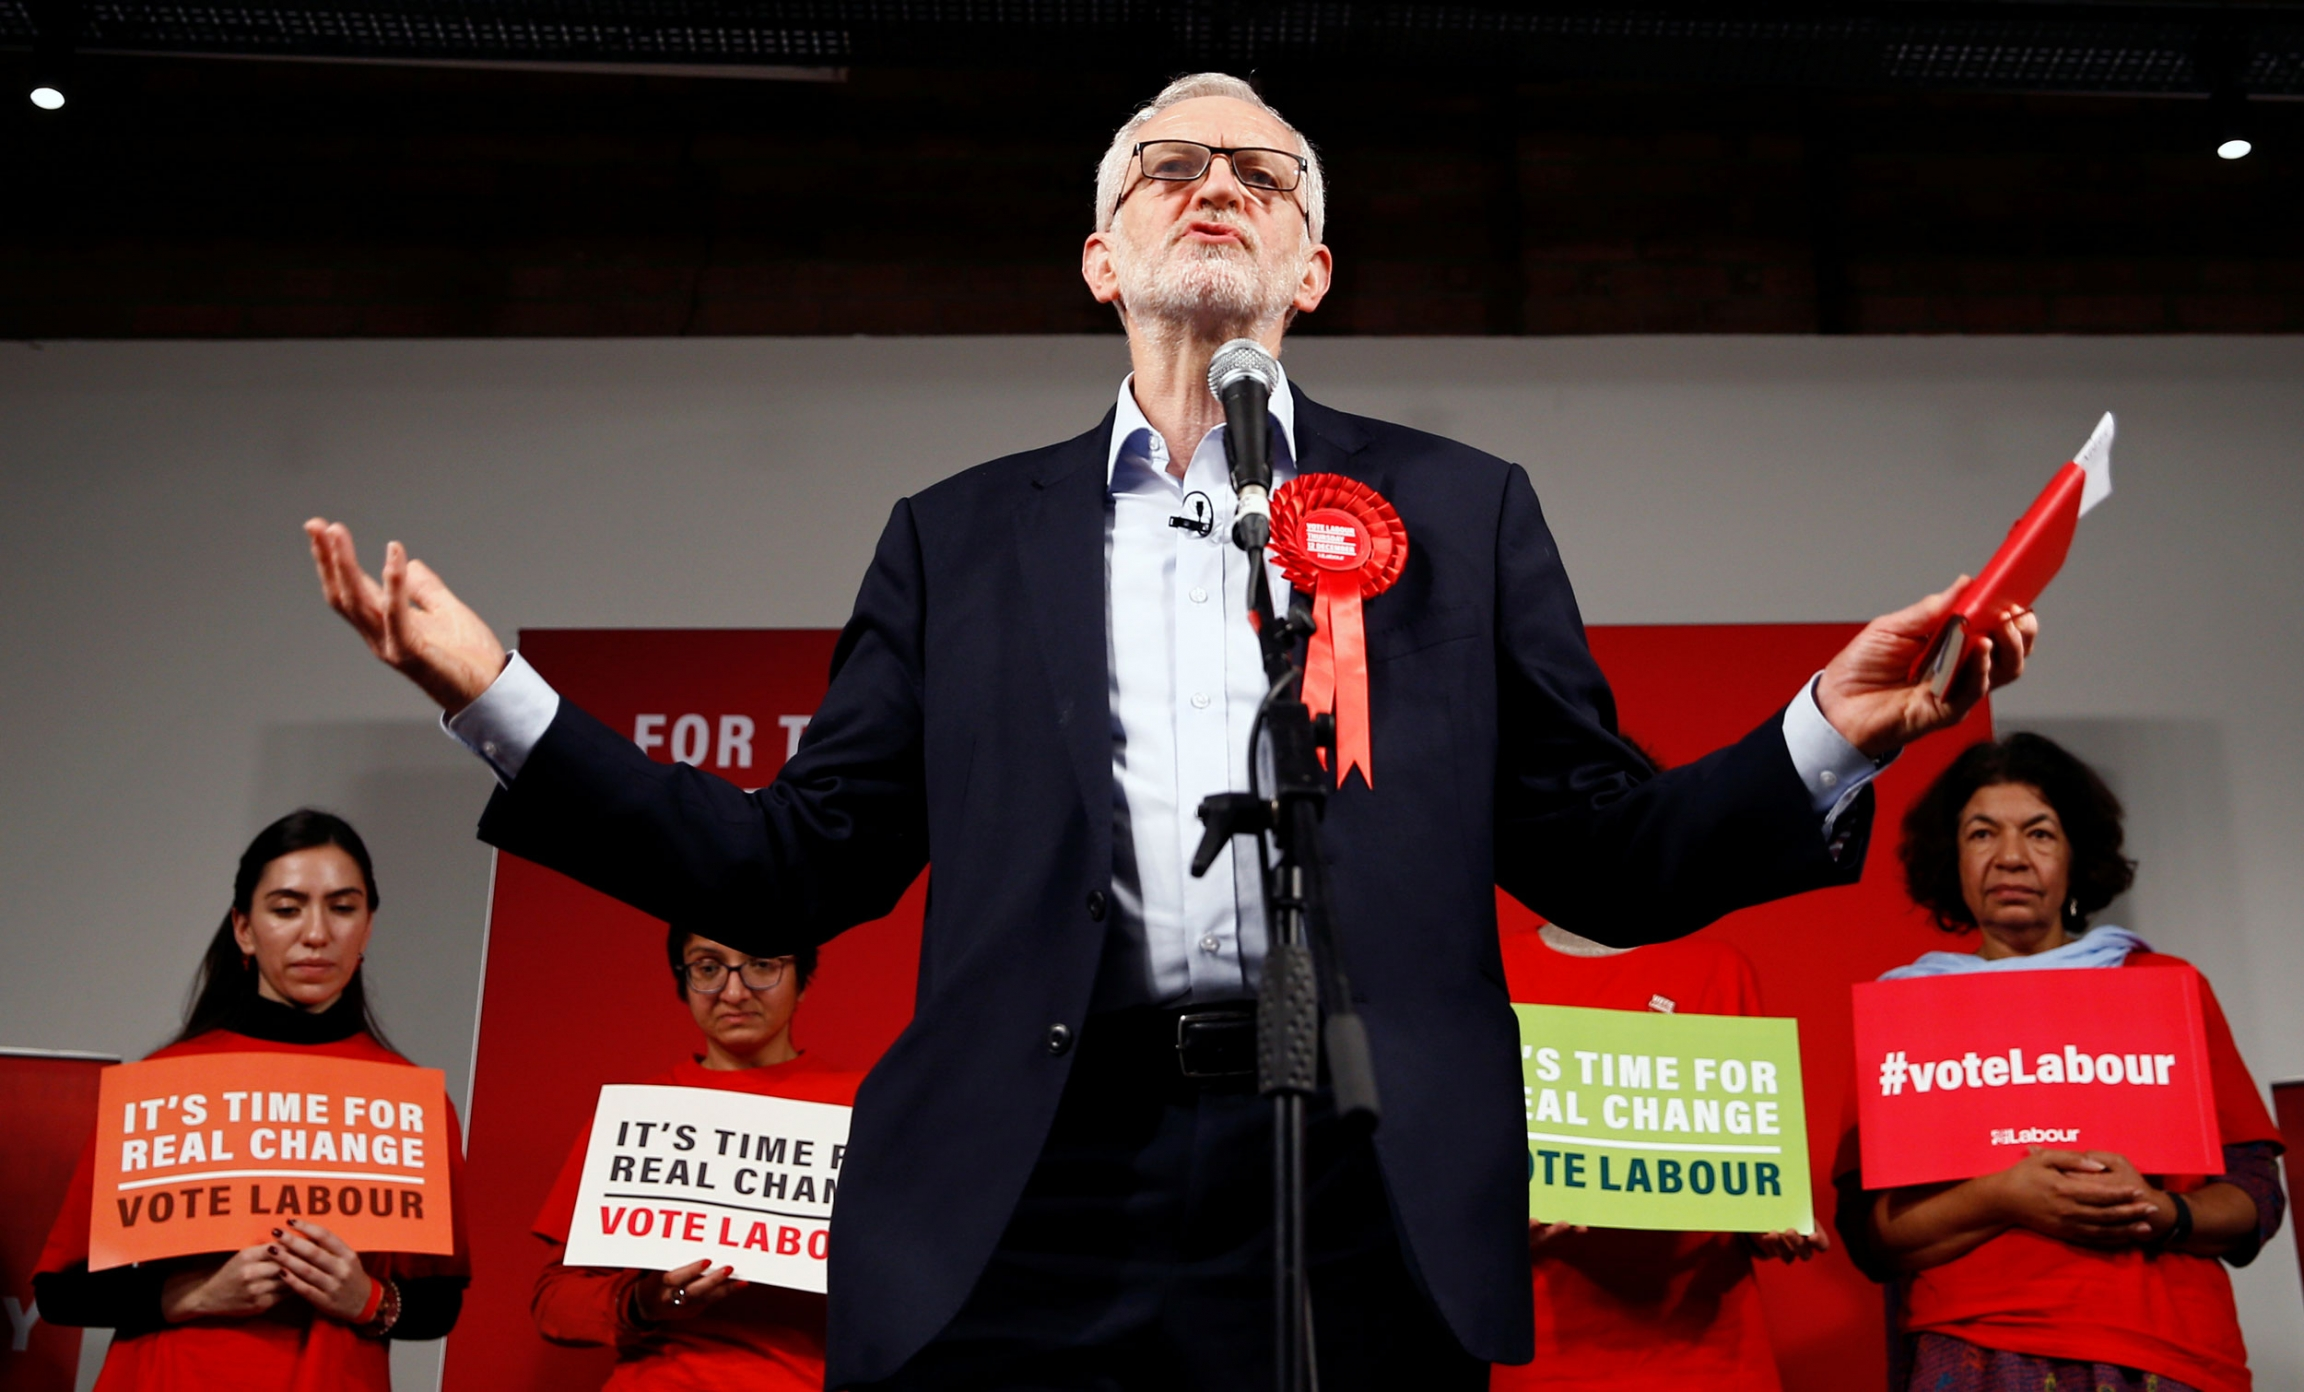 Britain's opposition Labour Party leader Jeremy Corbyn is shown standing a microphone wearing a large red ribbon and holding a red book.